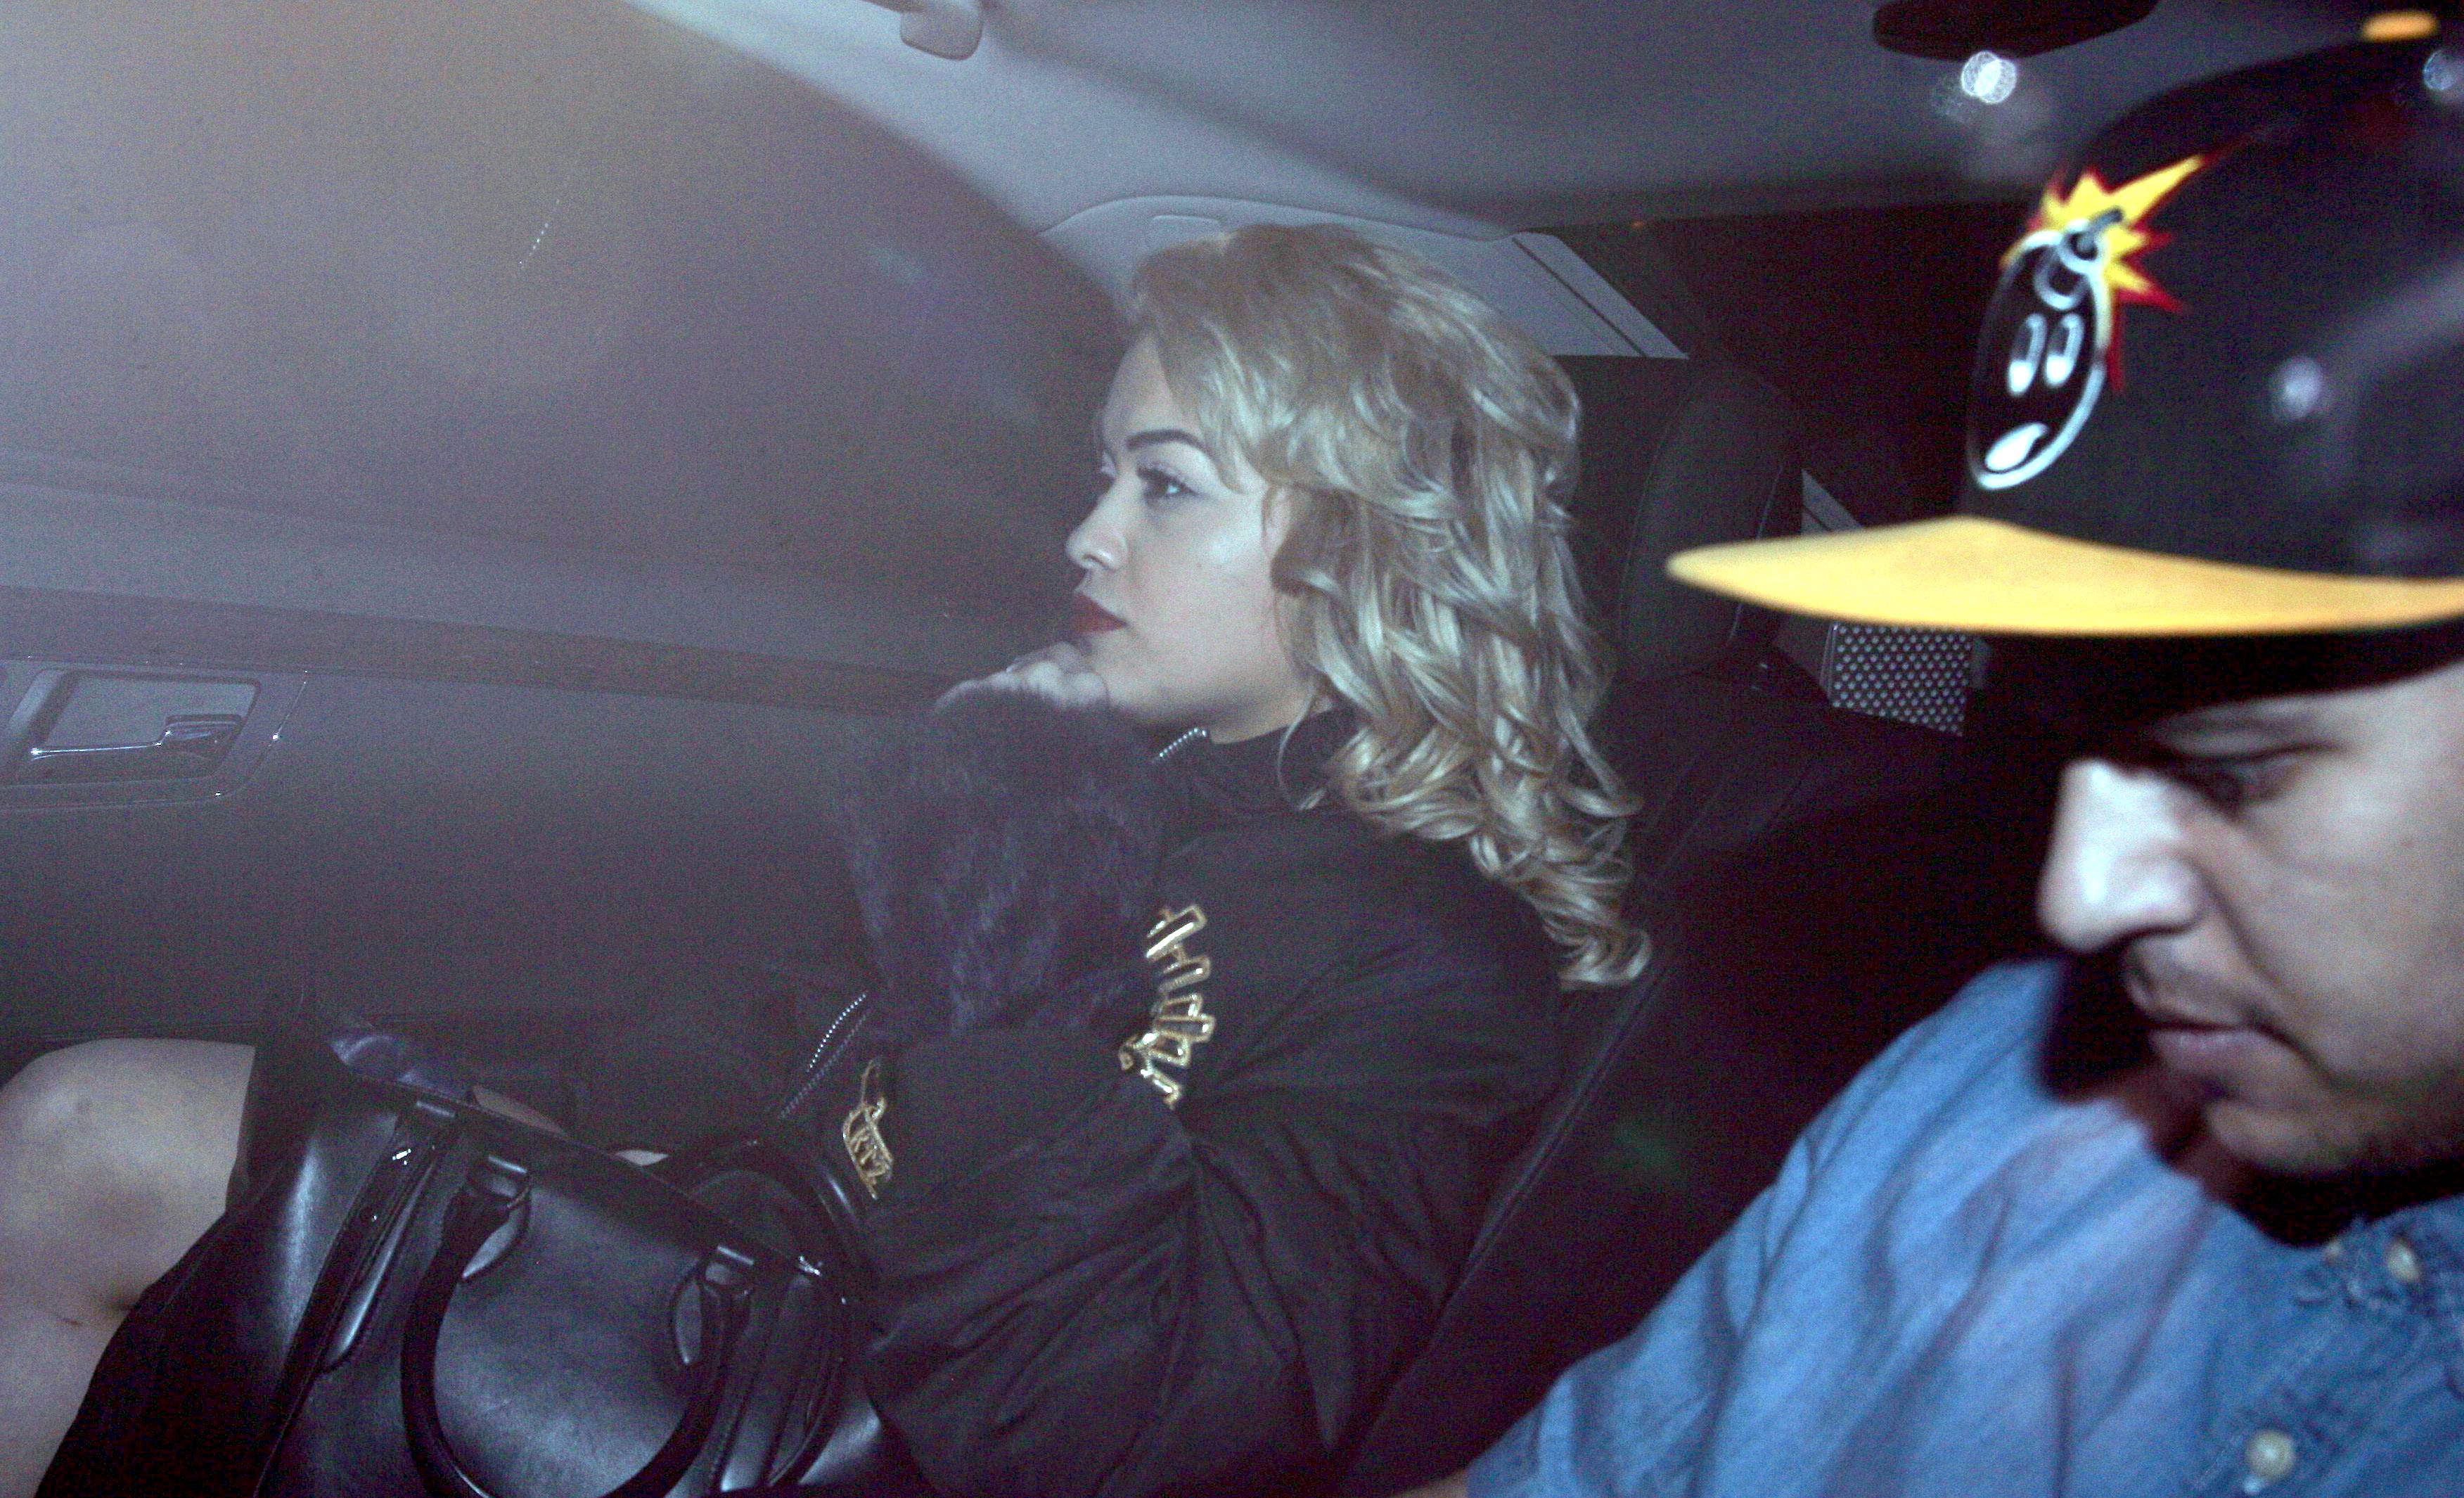 Rita Ora and Rob Kardashian